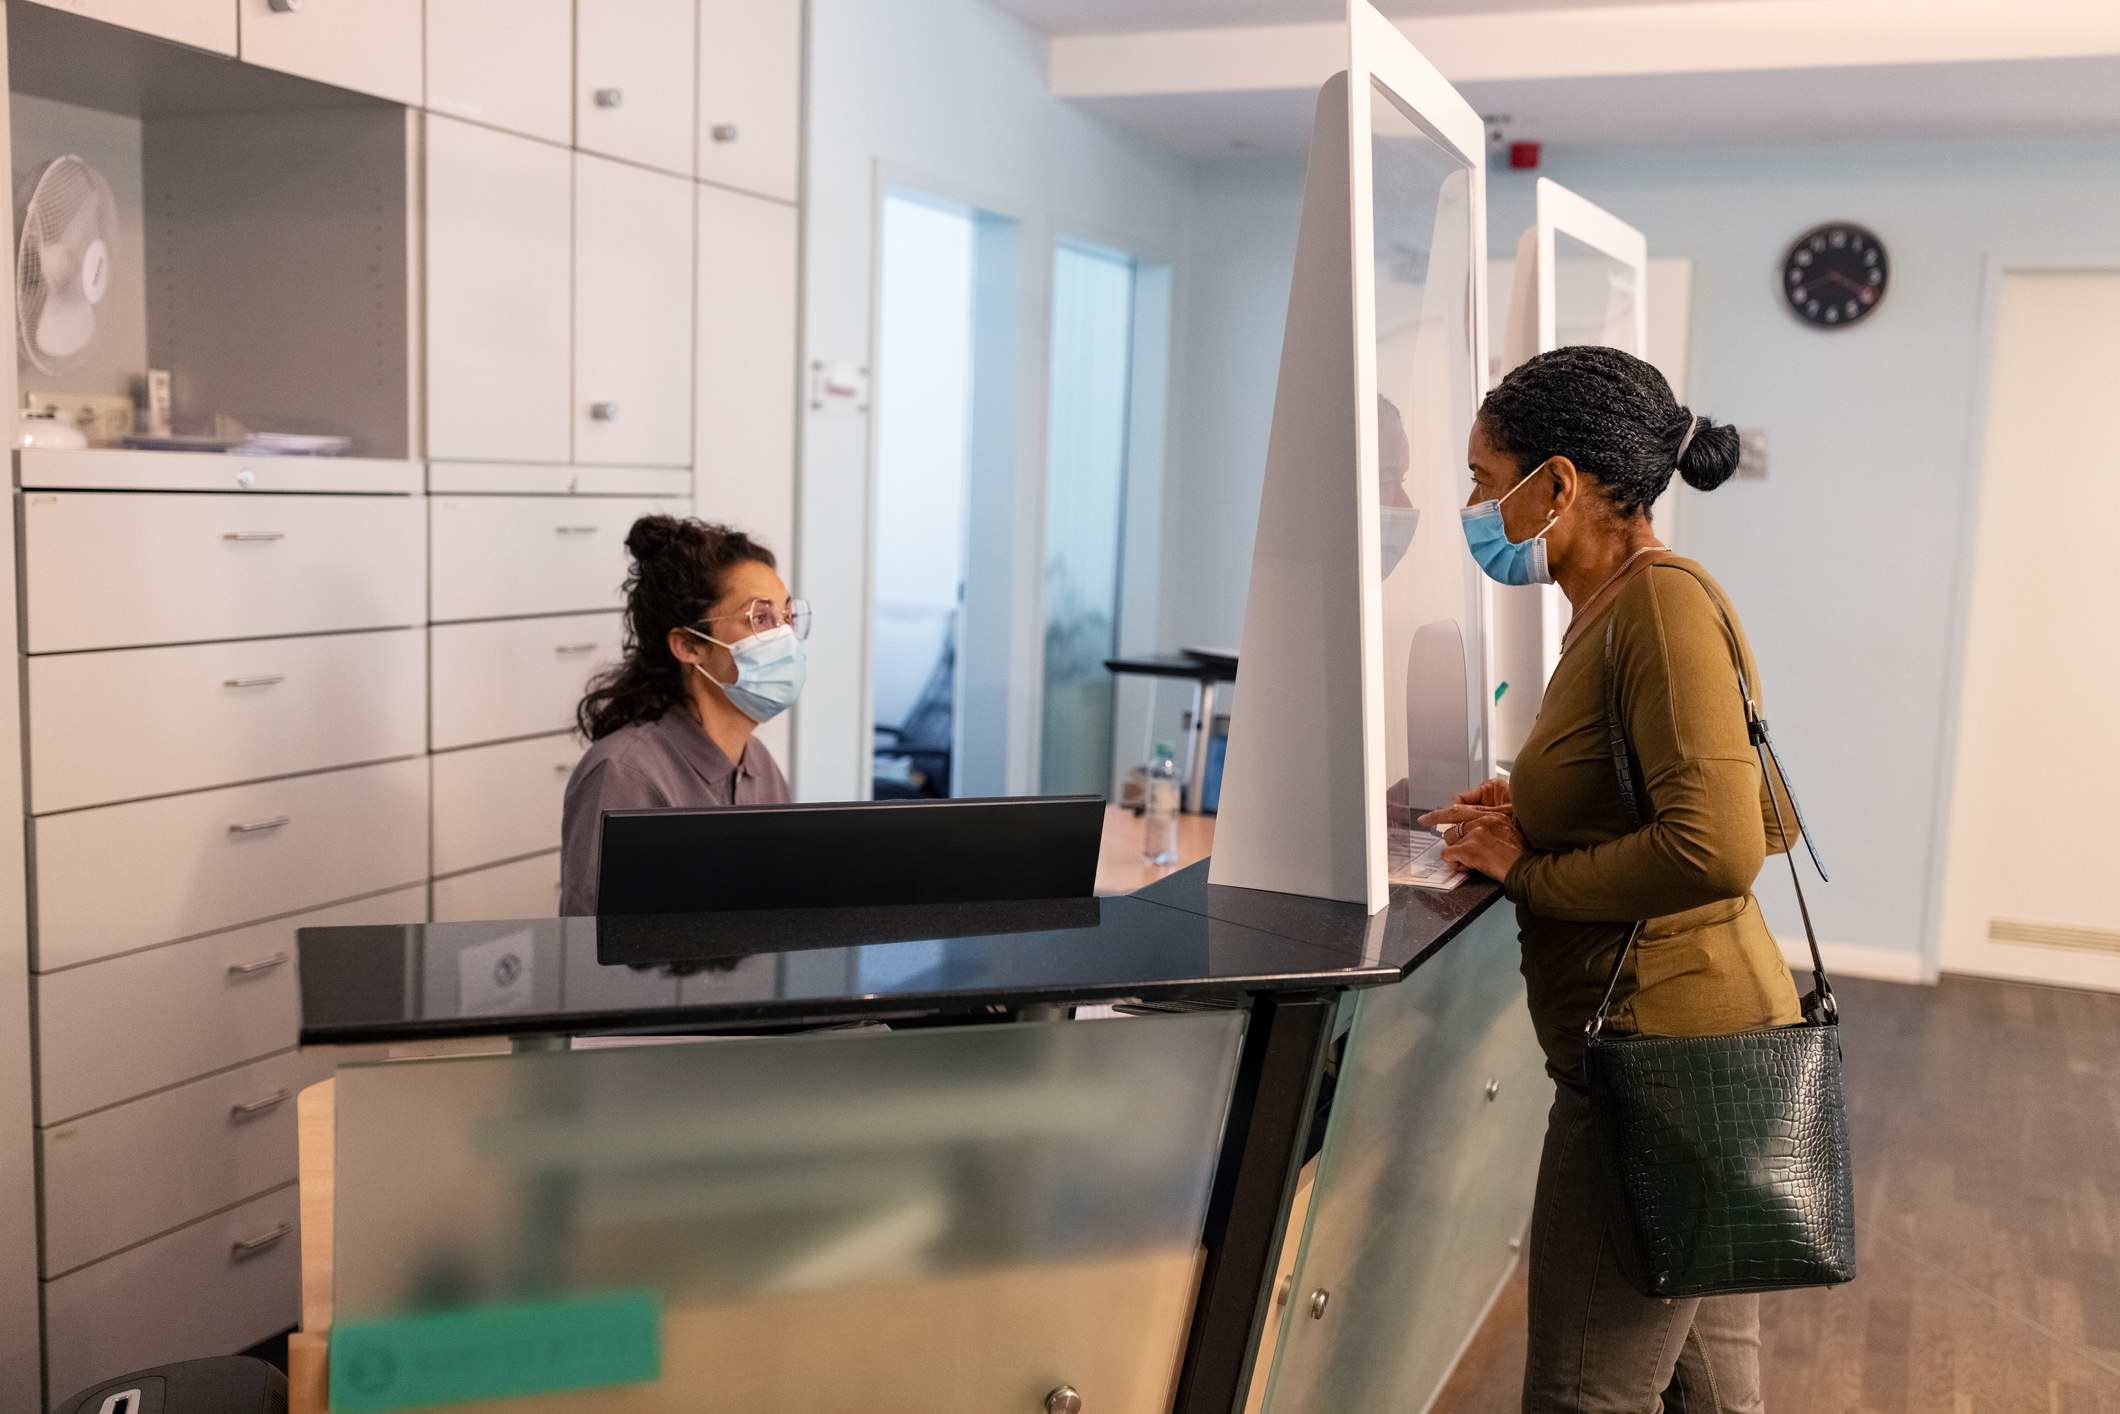 A person, wearing a face mask, talking to a receptionist, who's also wearing a face mask